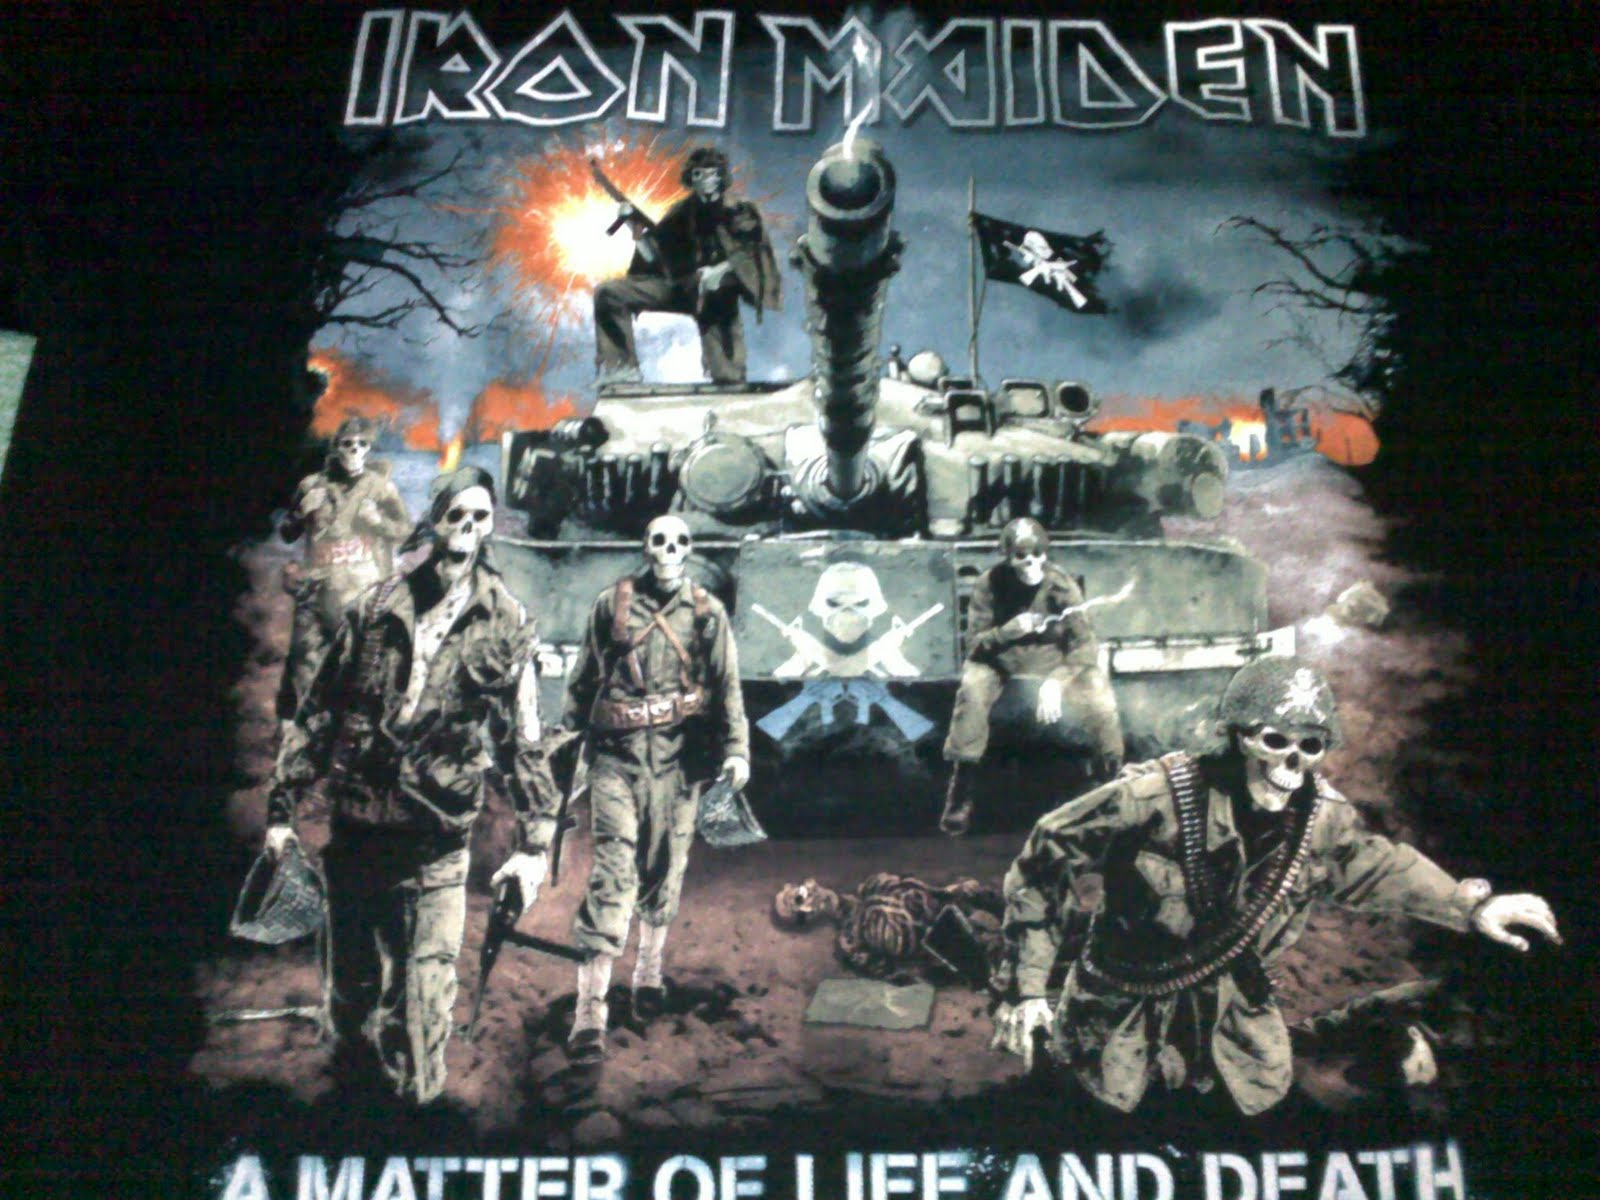 a matter of life and death world tour: